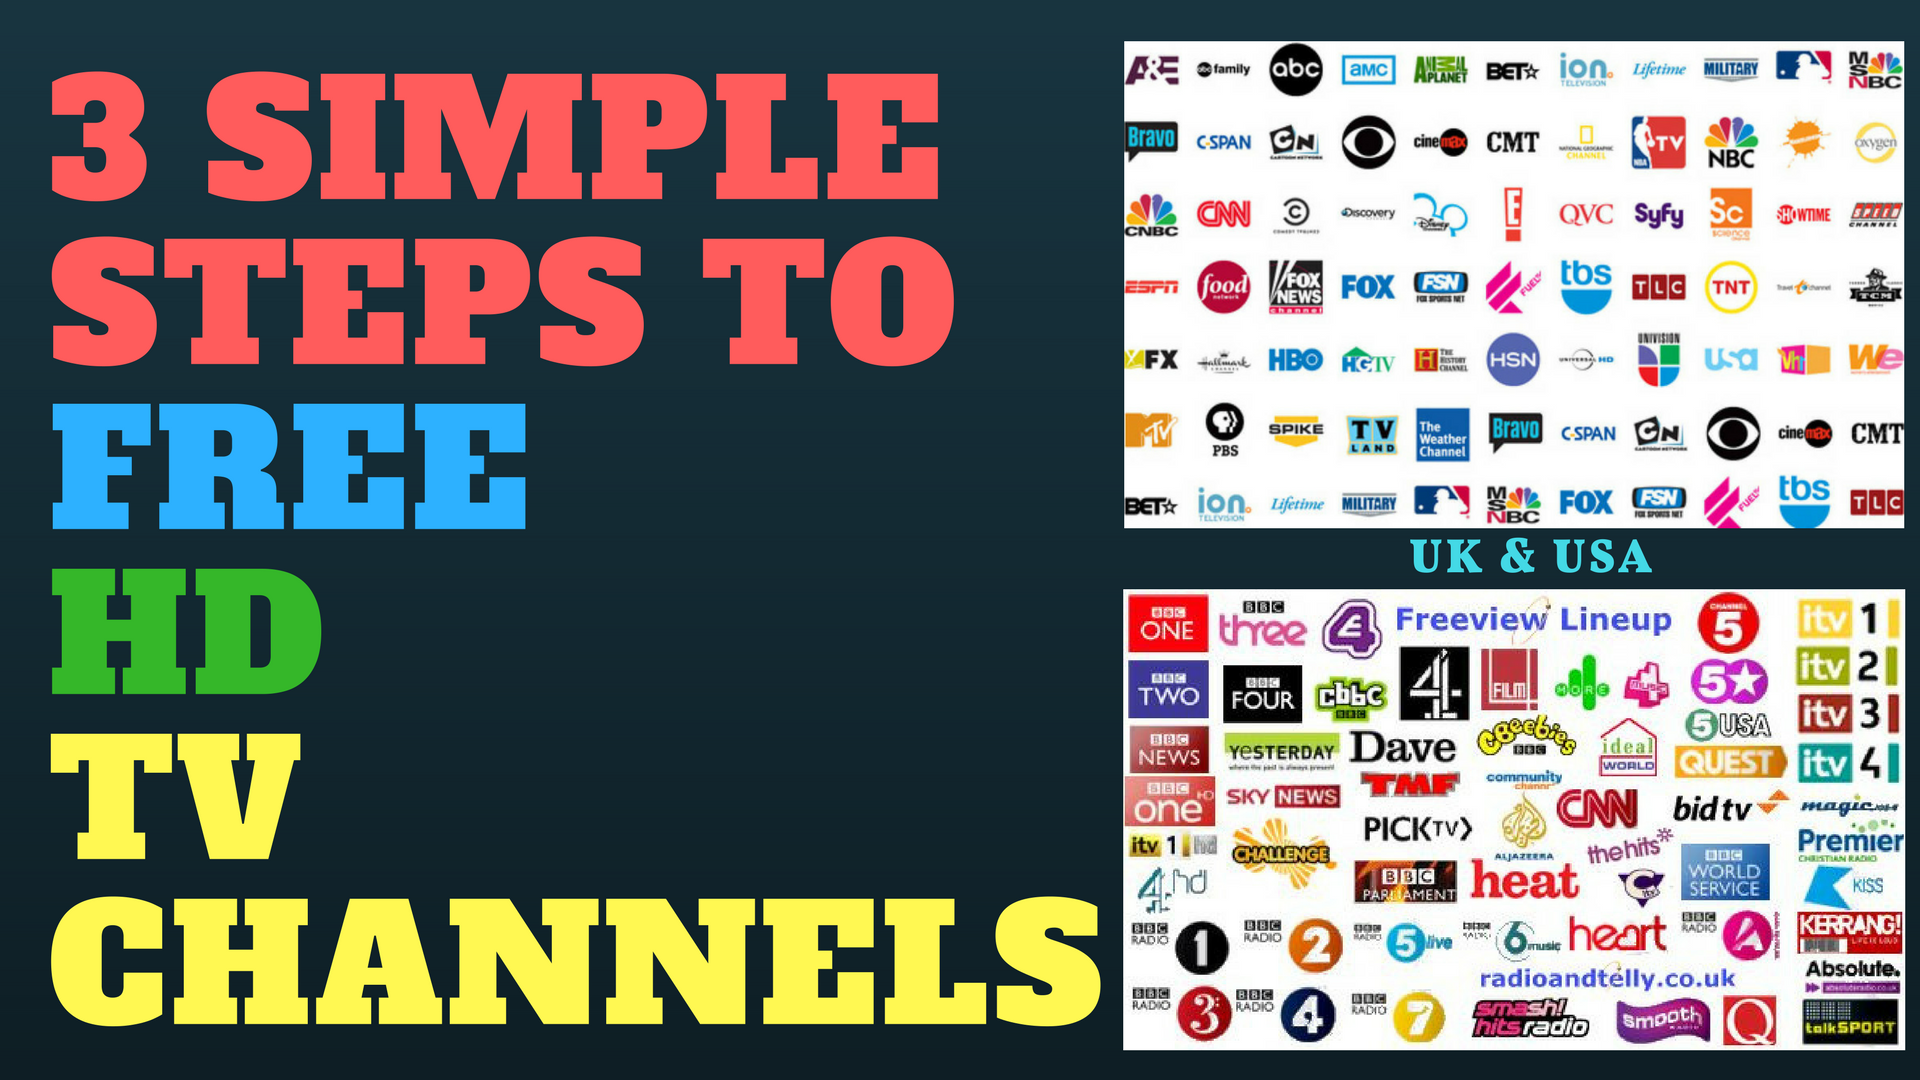 3 Simple Steps to FREE TV Channels -